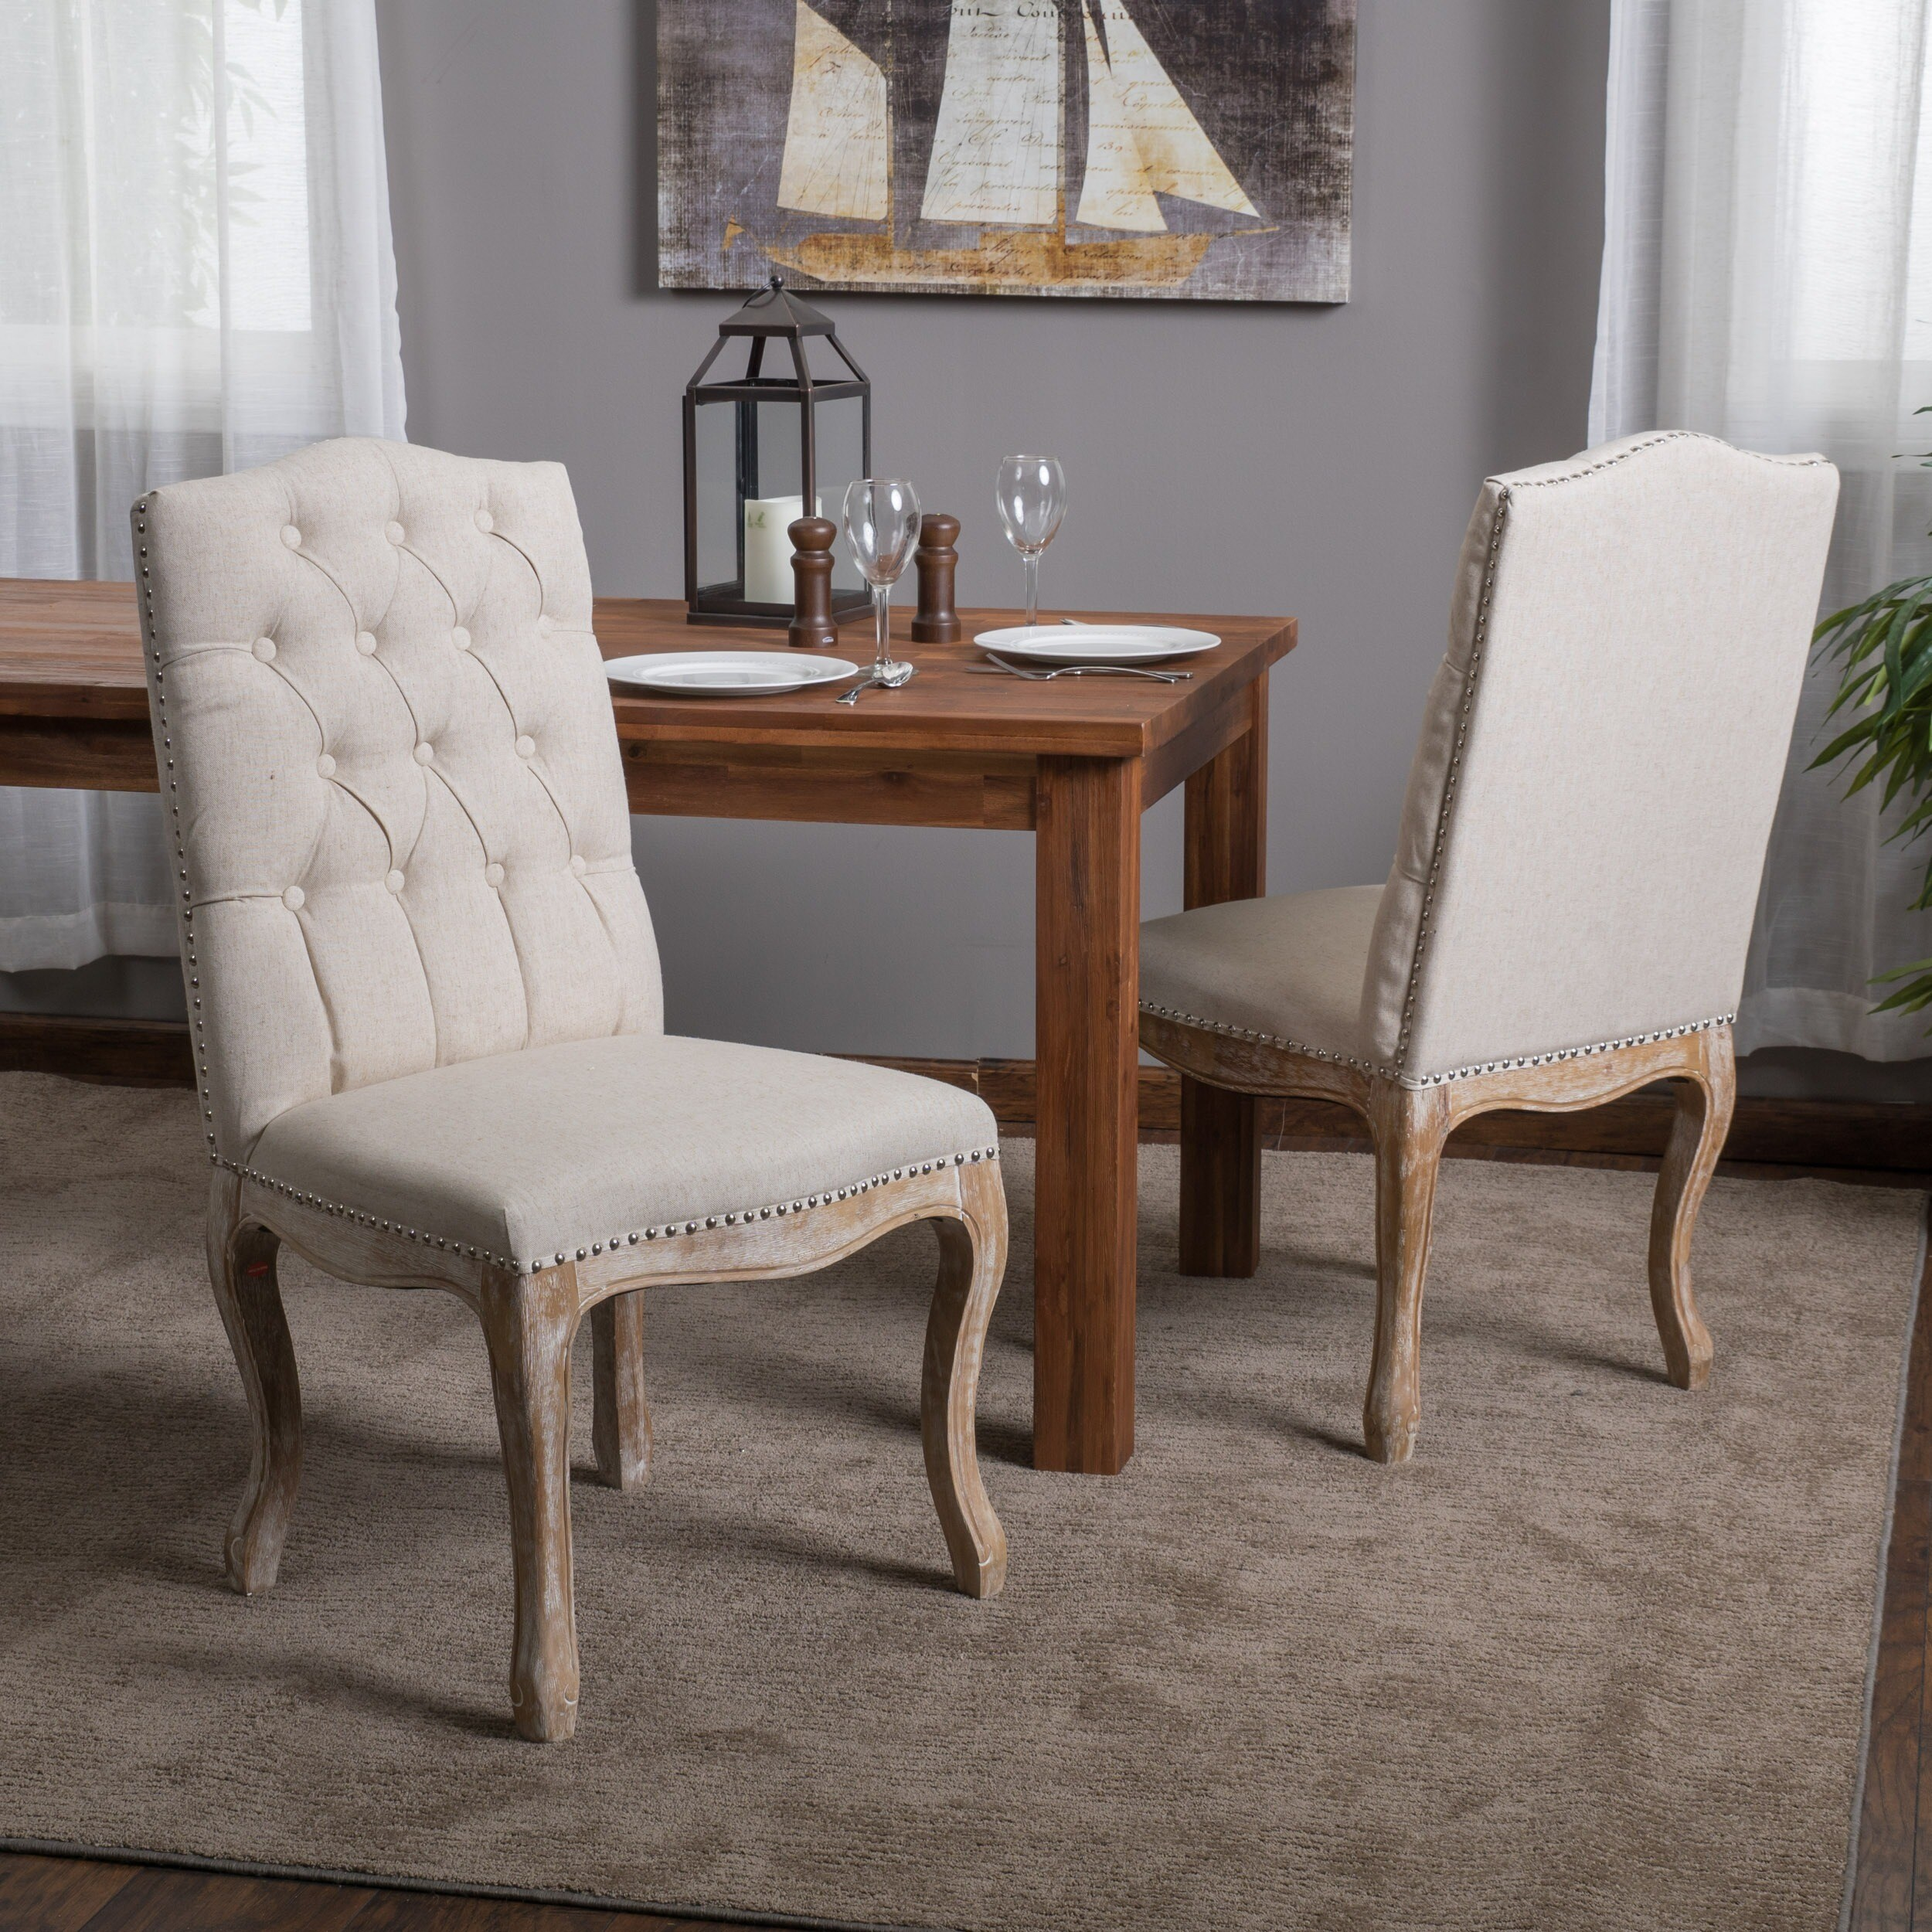 Dinner Chair: Christopher Knight Home Beige Tufted Fabric Weathered